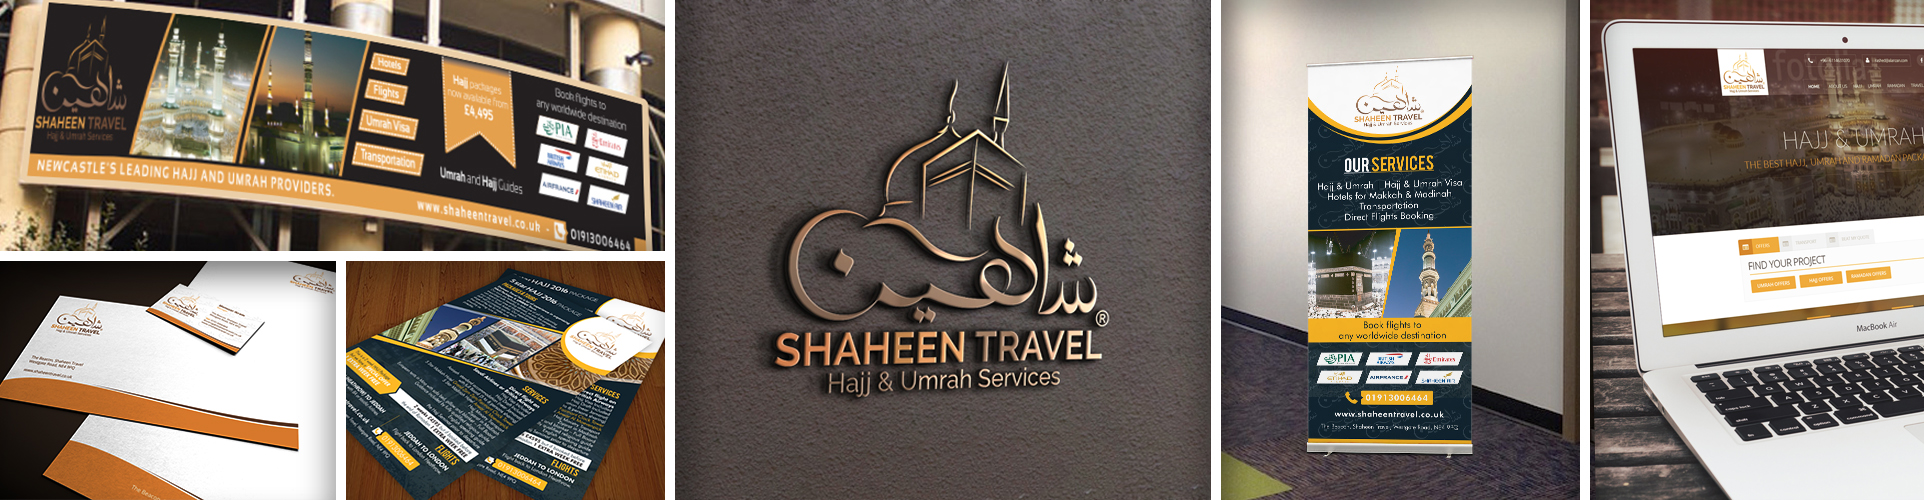 Shaheen Travel Logo Design, Web Development & Branding Collage